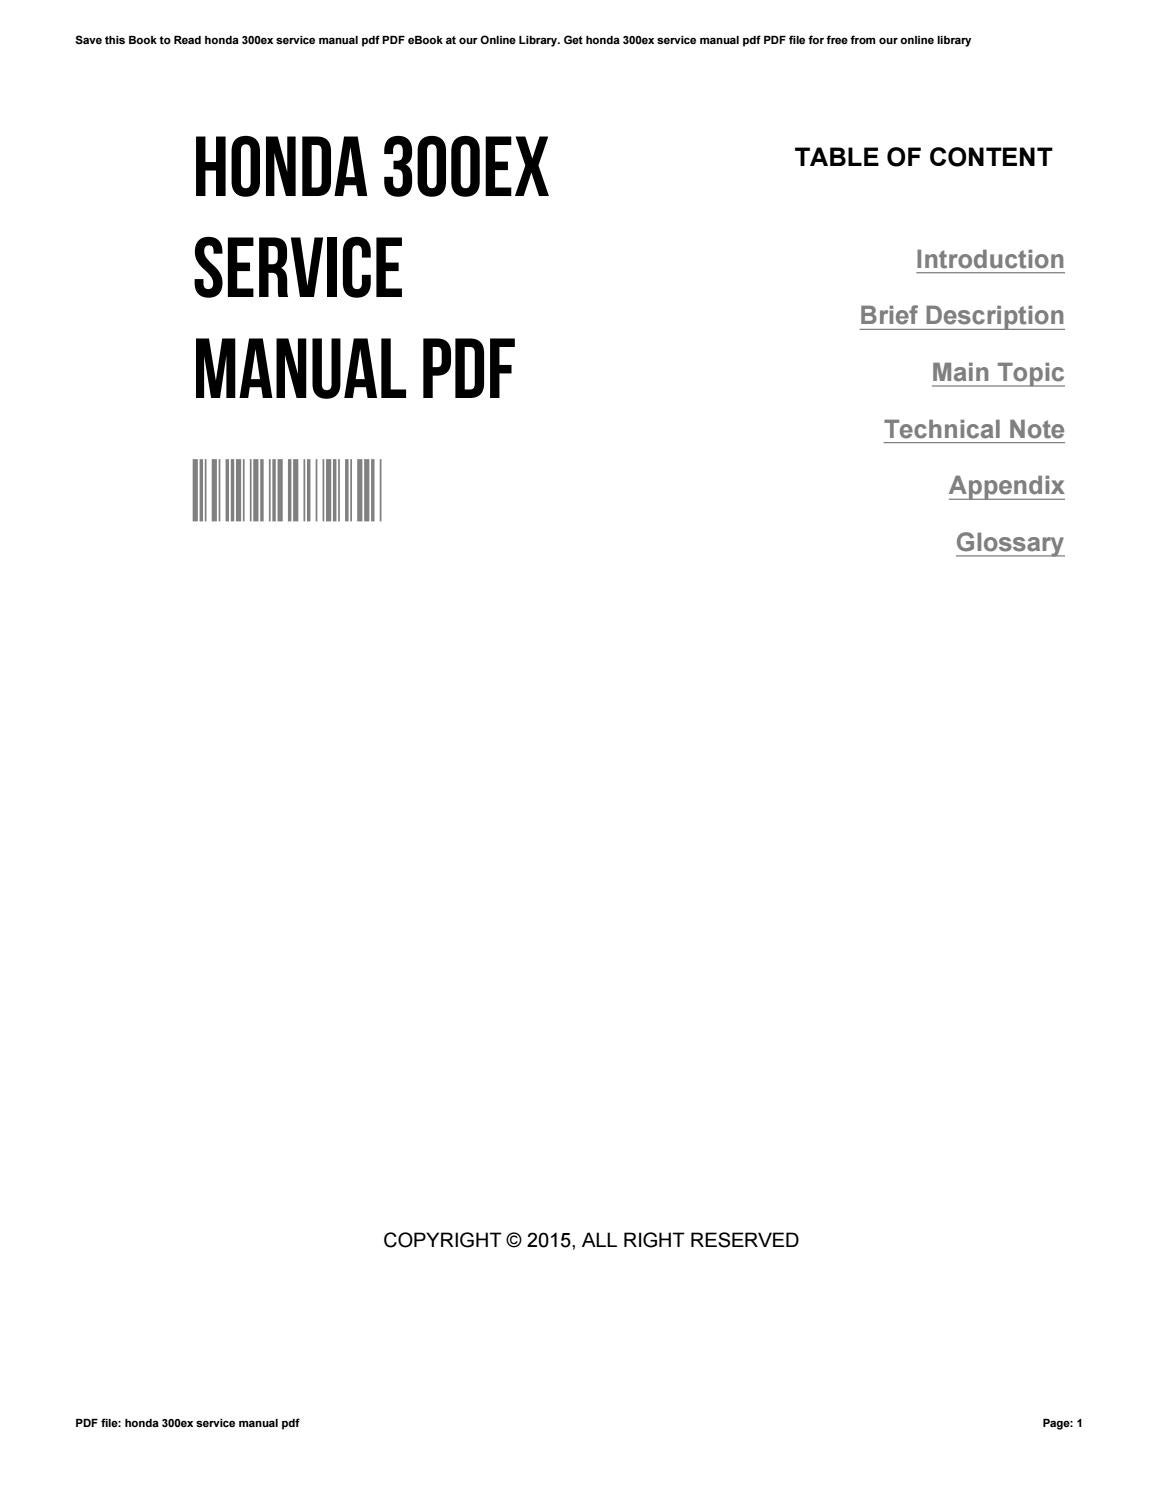 honda 300ex service manual pdf by christinecorman2328